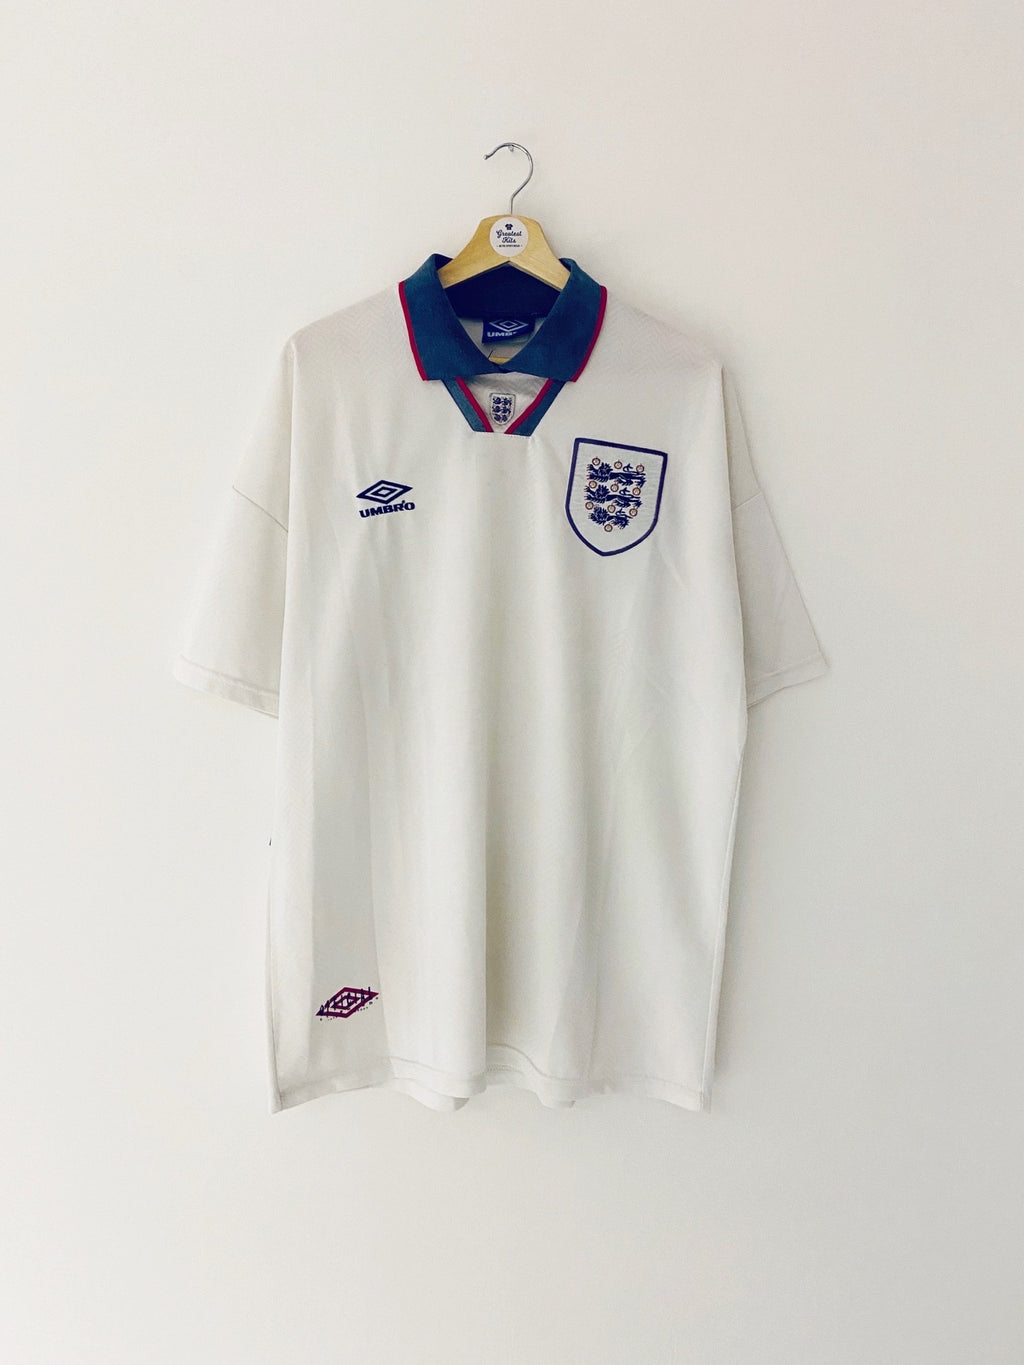 1993/95 England Home Shirt (XL) 6.5/10